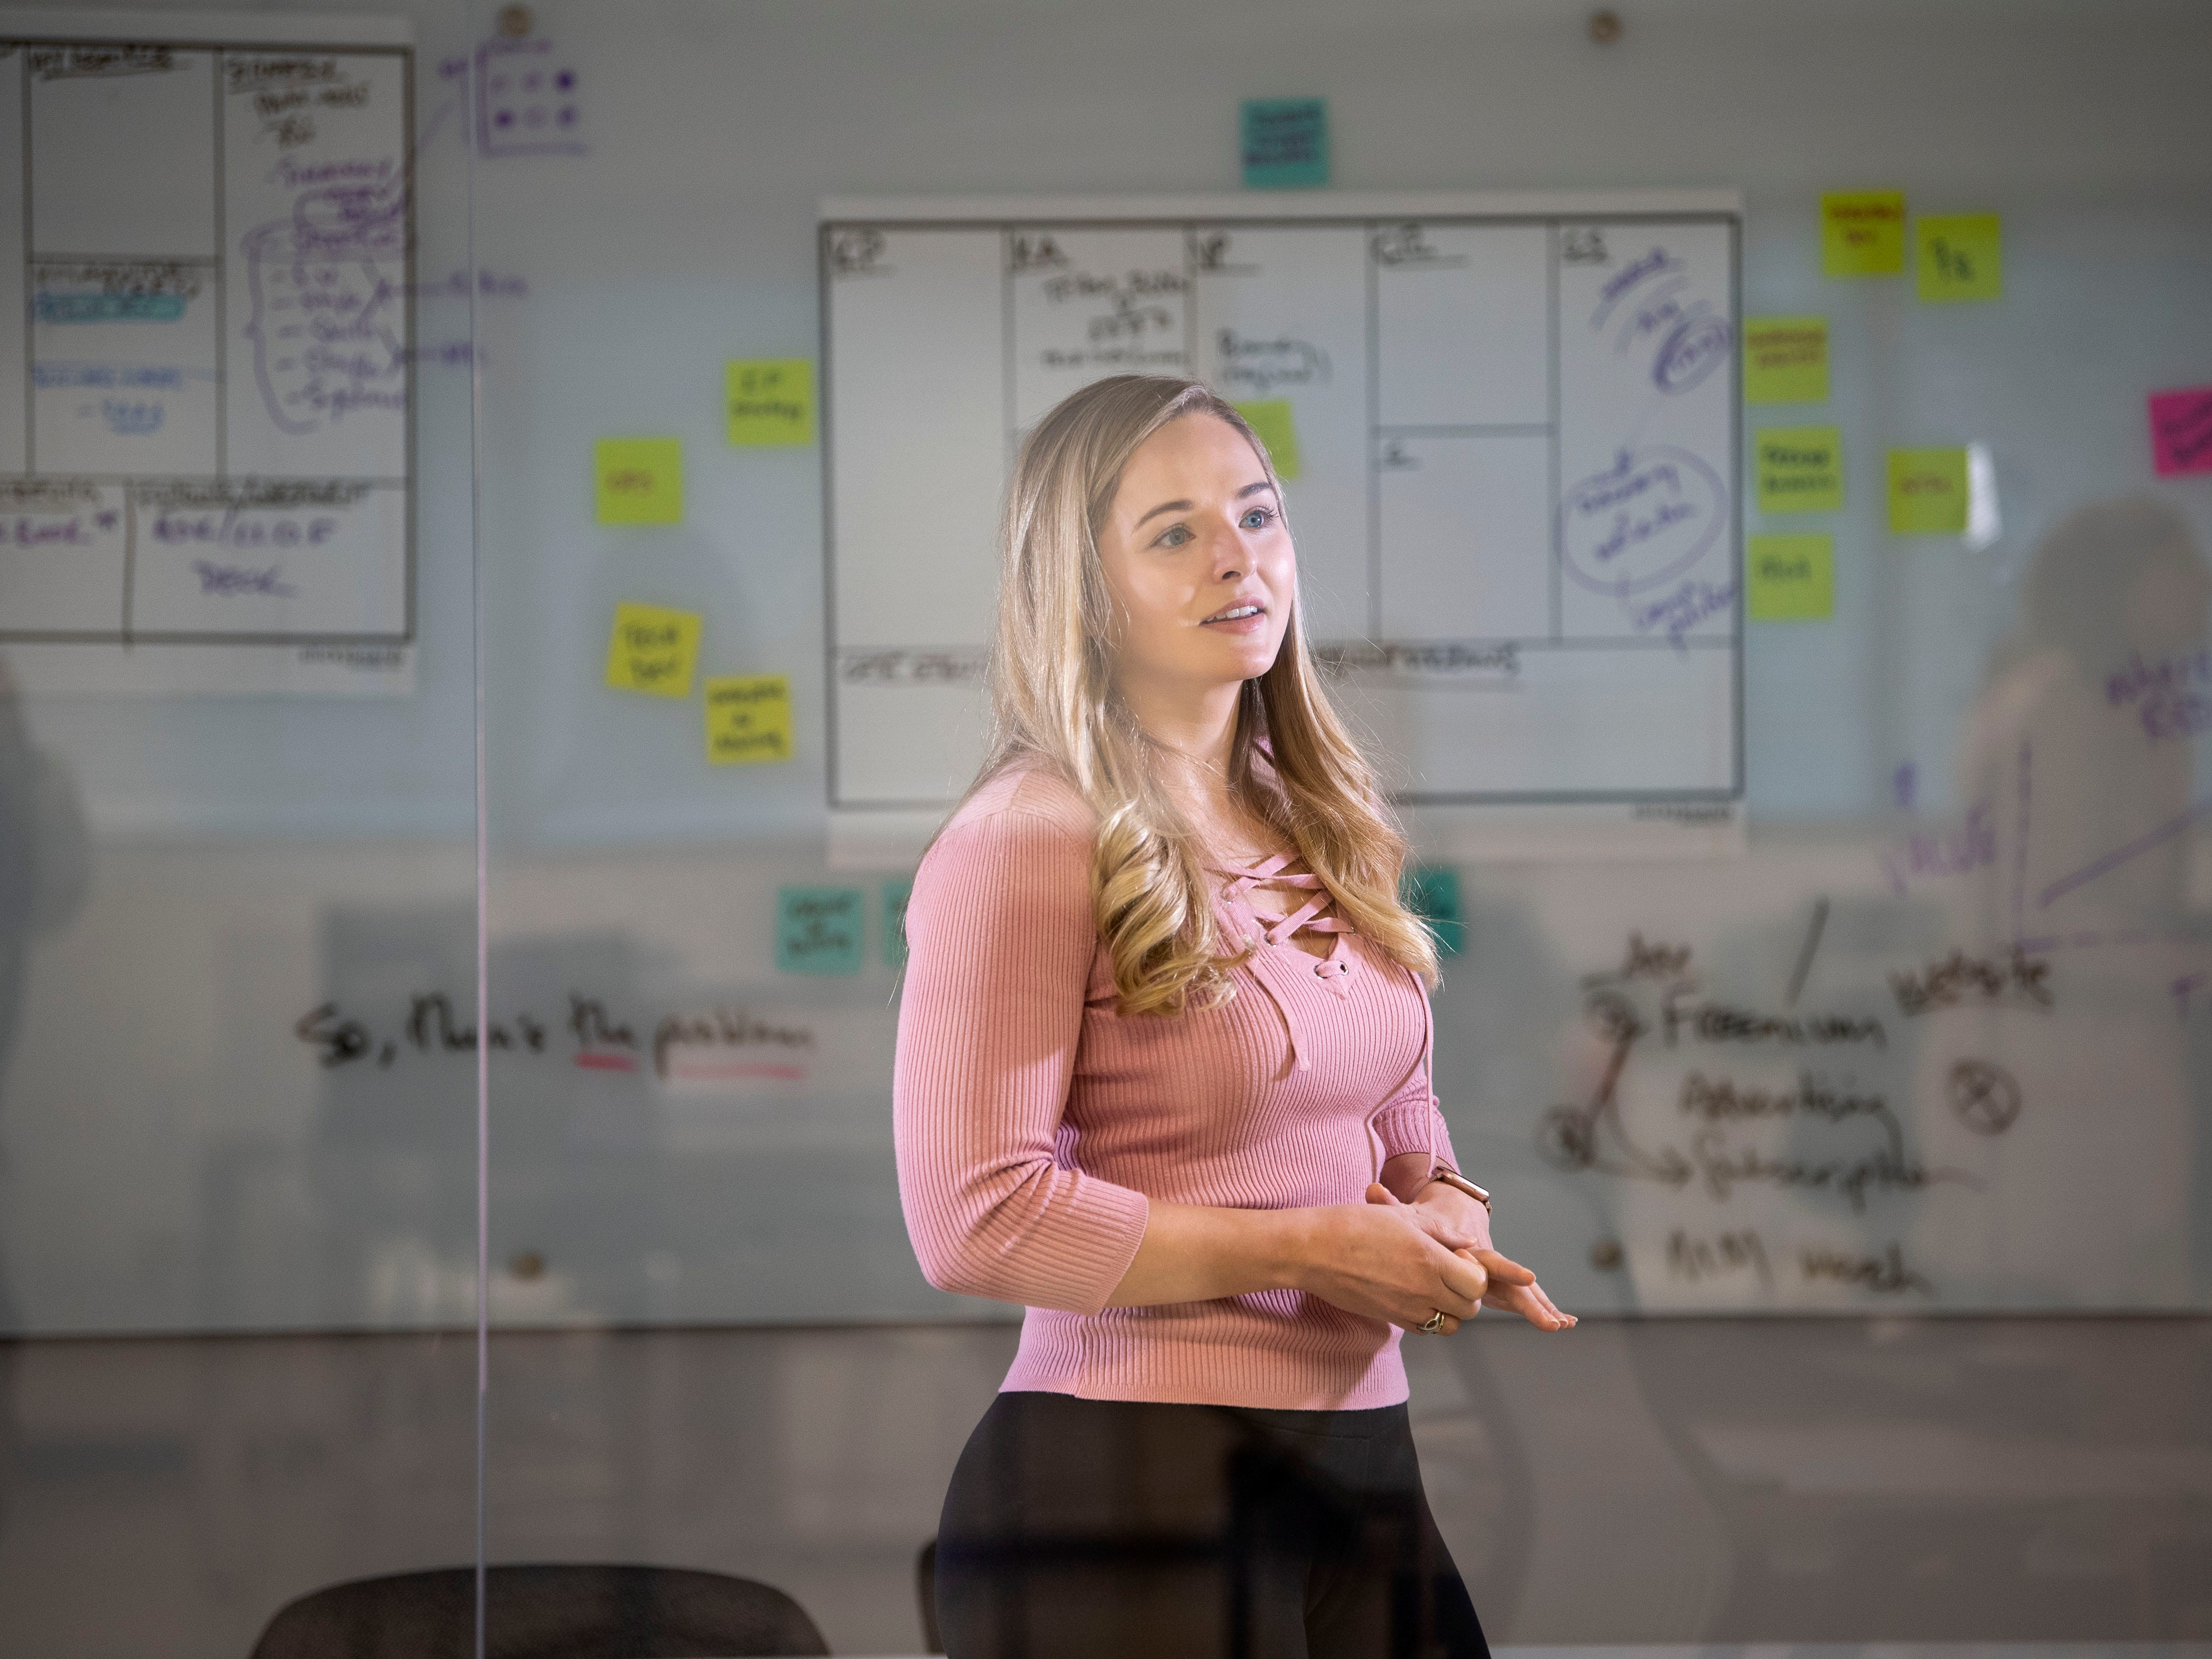 Erica Grant, CEO of Quantum Lock on Monday, March 11, 2019 at the University of Tennessee Research Foundation Incubator.